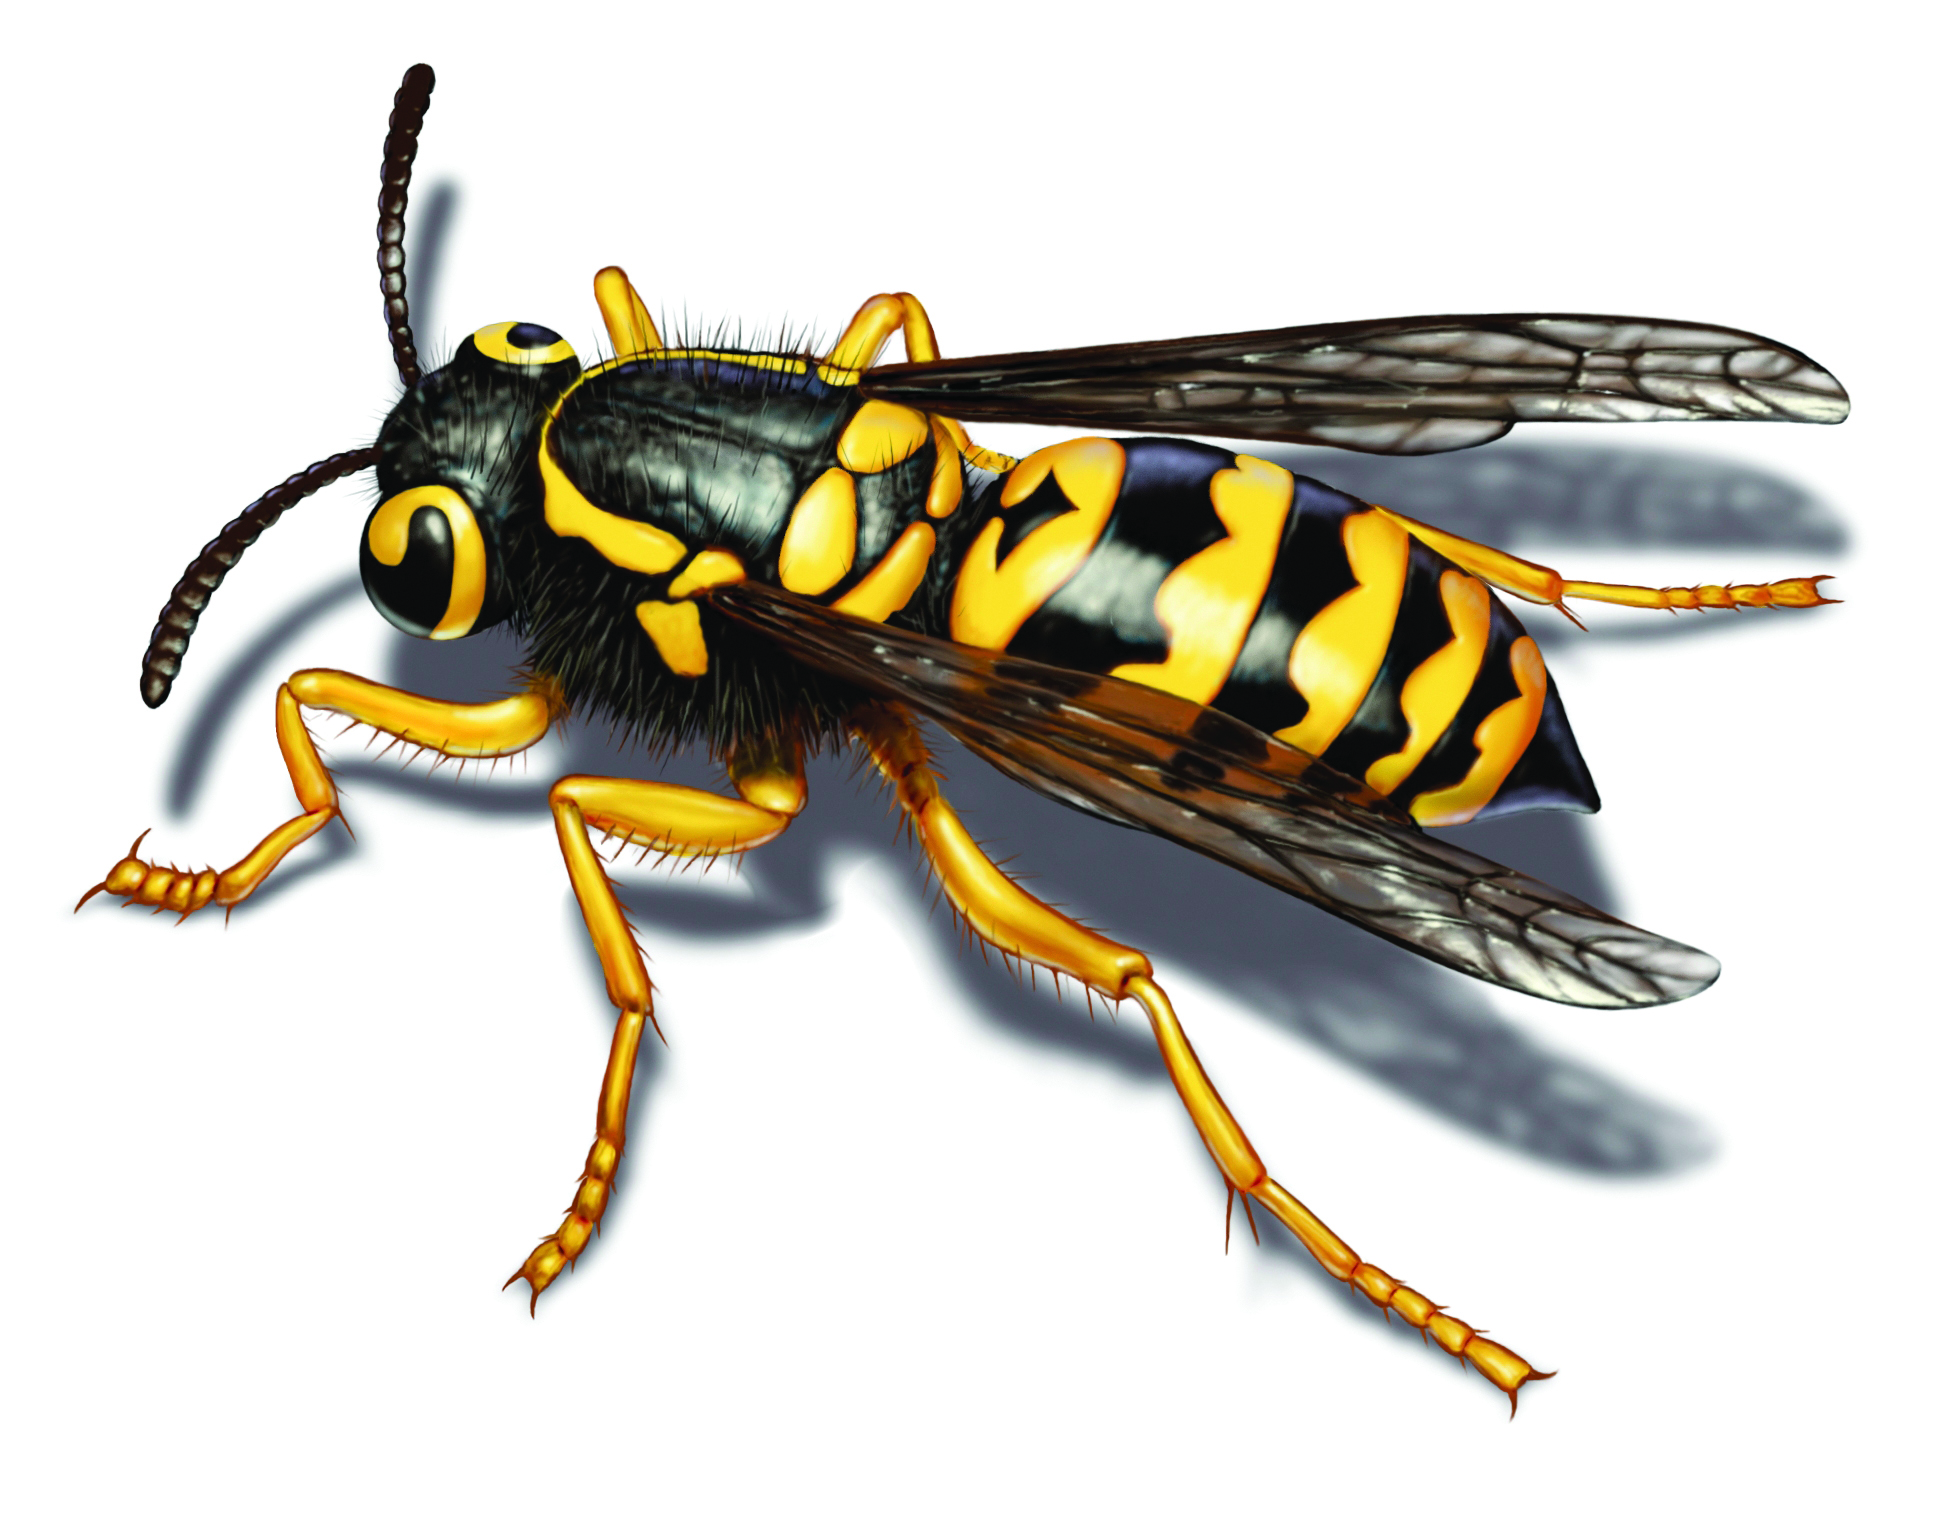 yellow jacket illustration